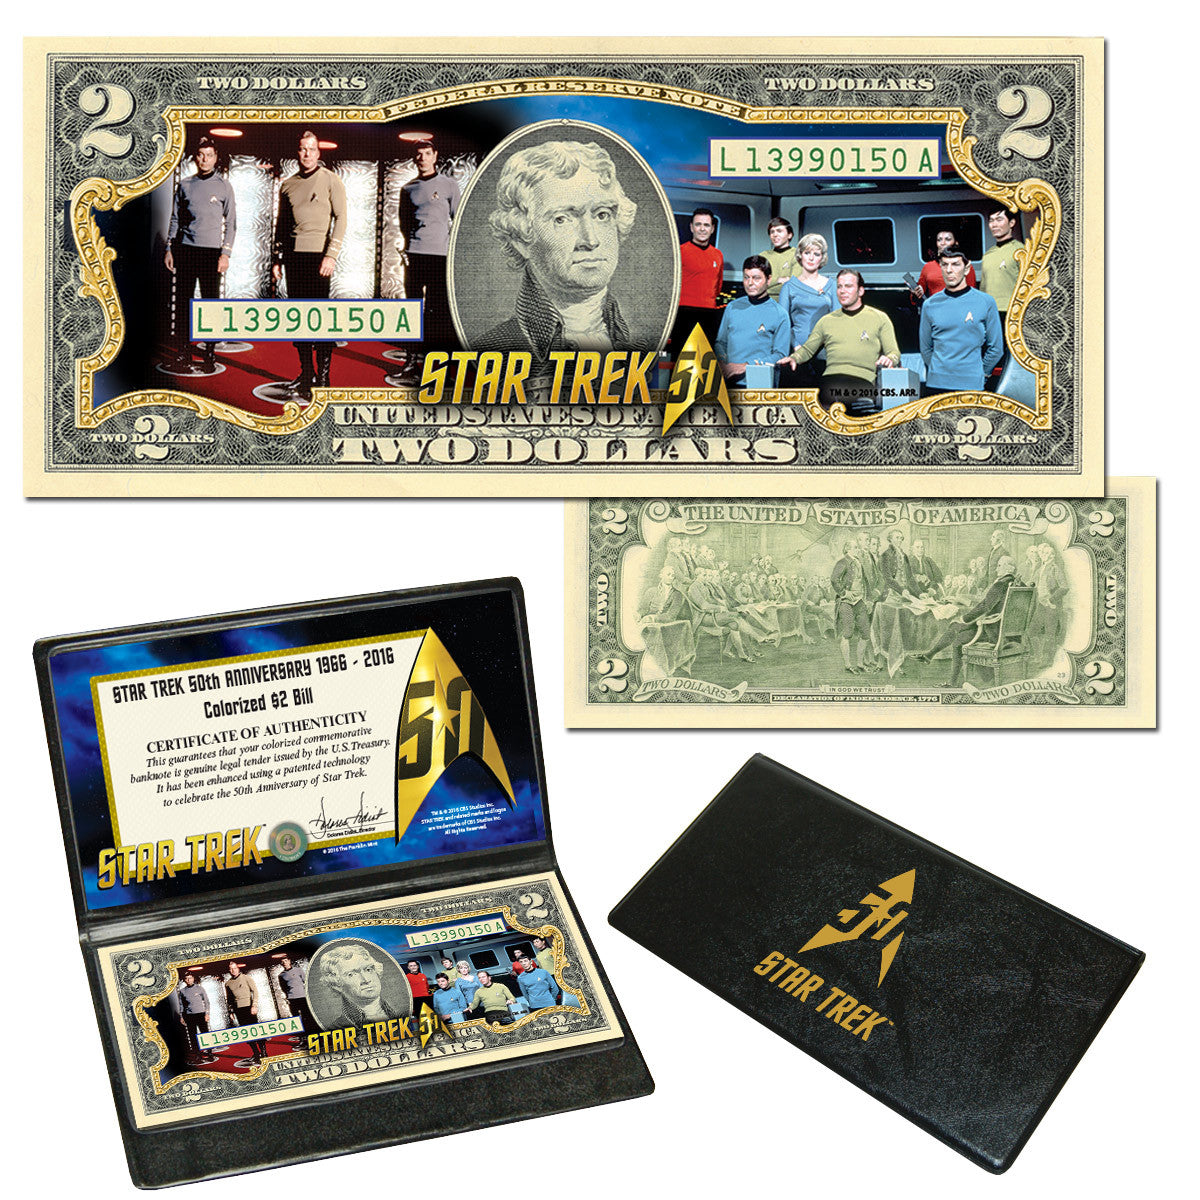 Star Trek Crew Colorized $2 Bill